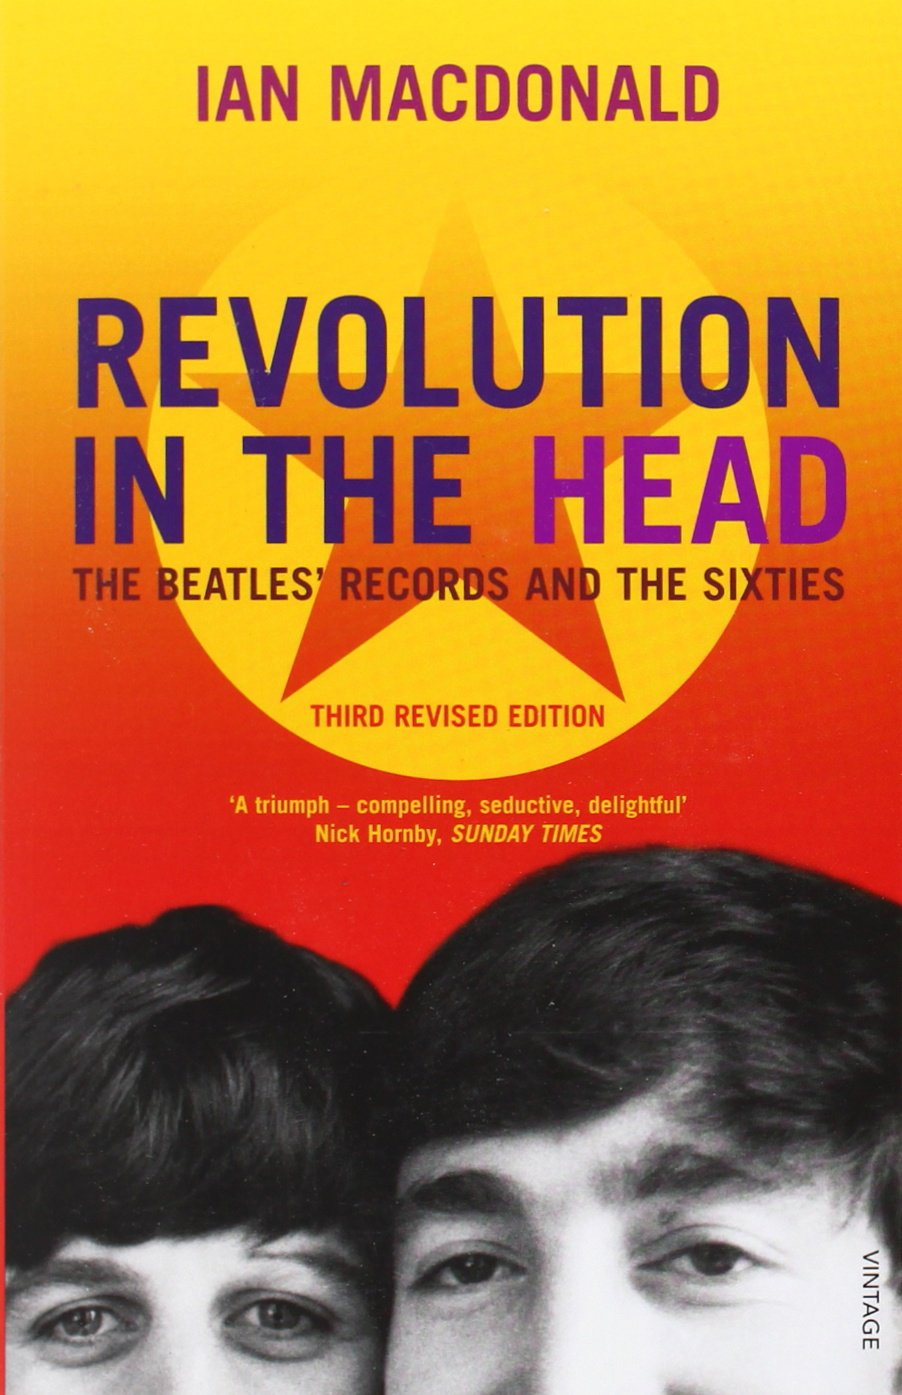 Review of Revolution in the Head by Ian McDonald, published in Oh Comely Issue Twenty-Seven.